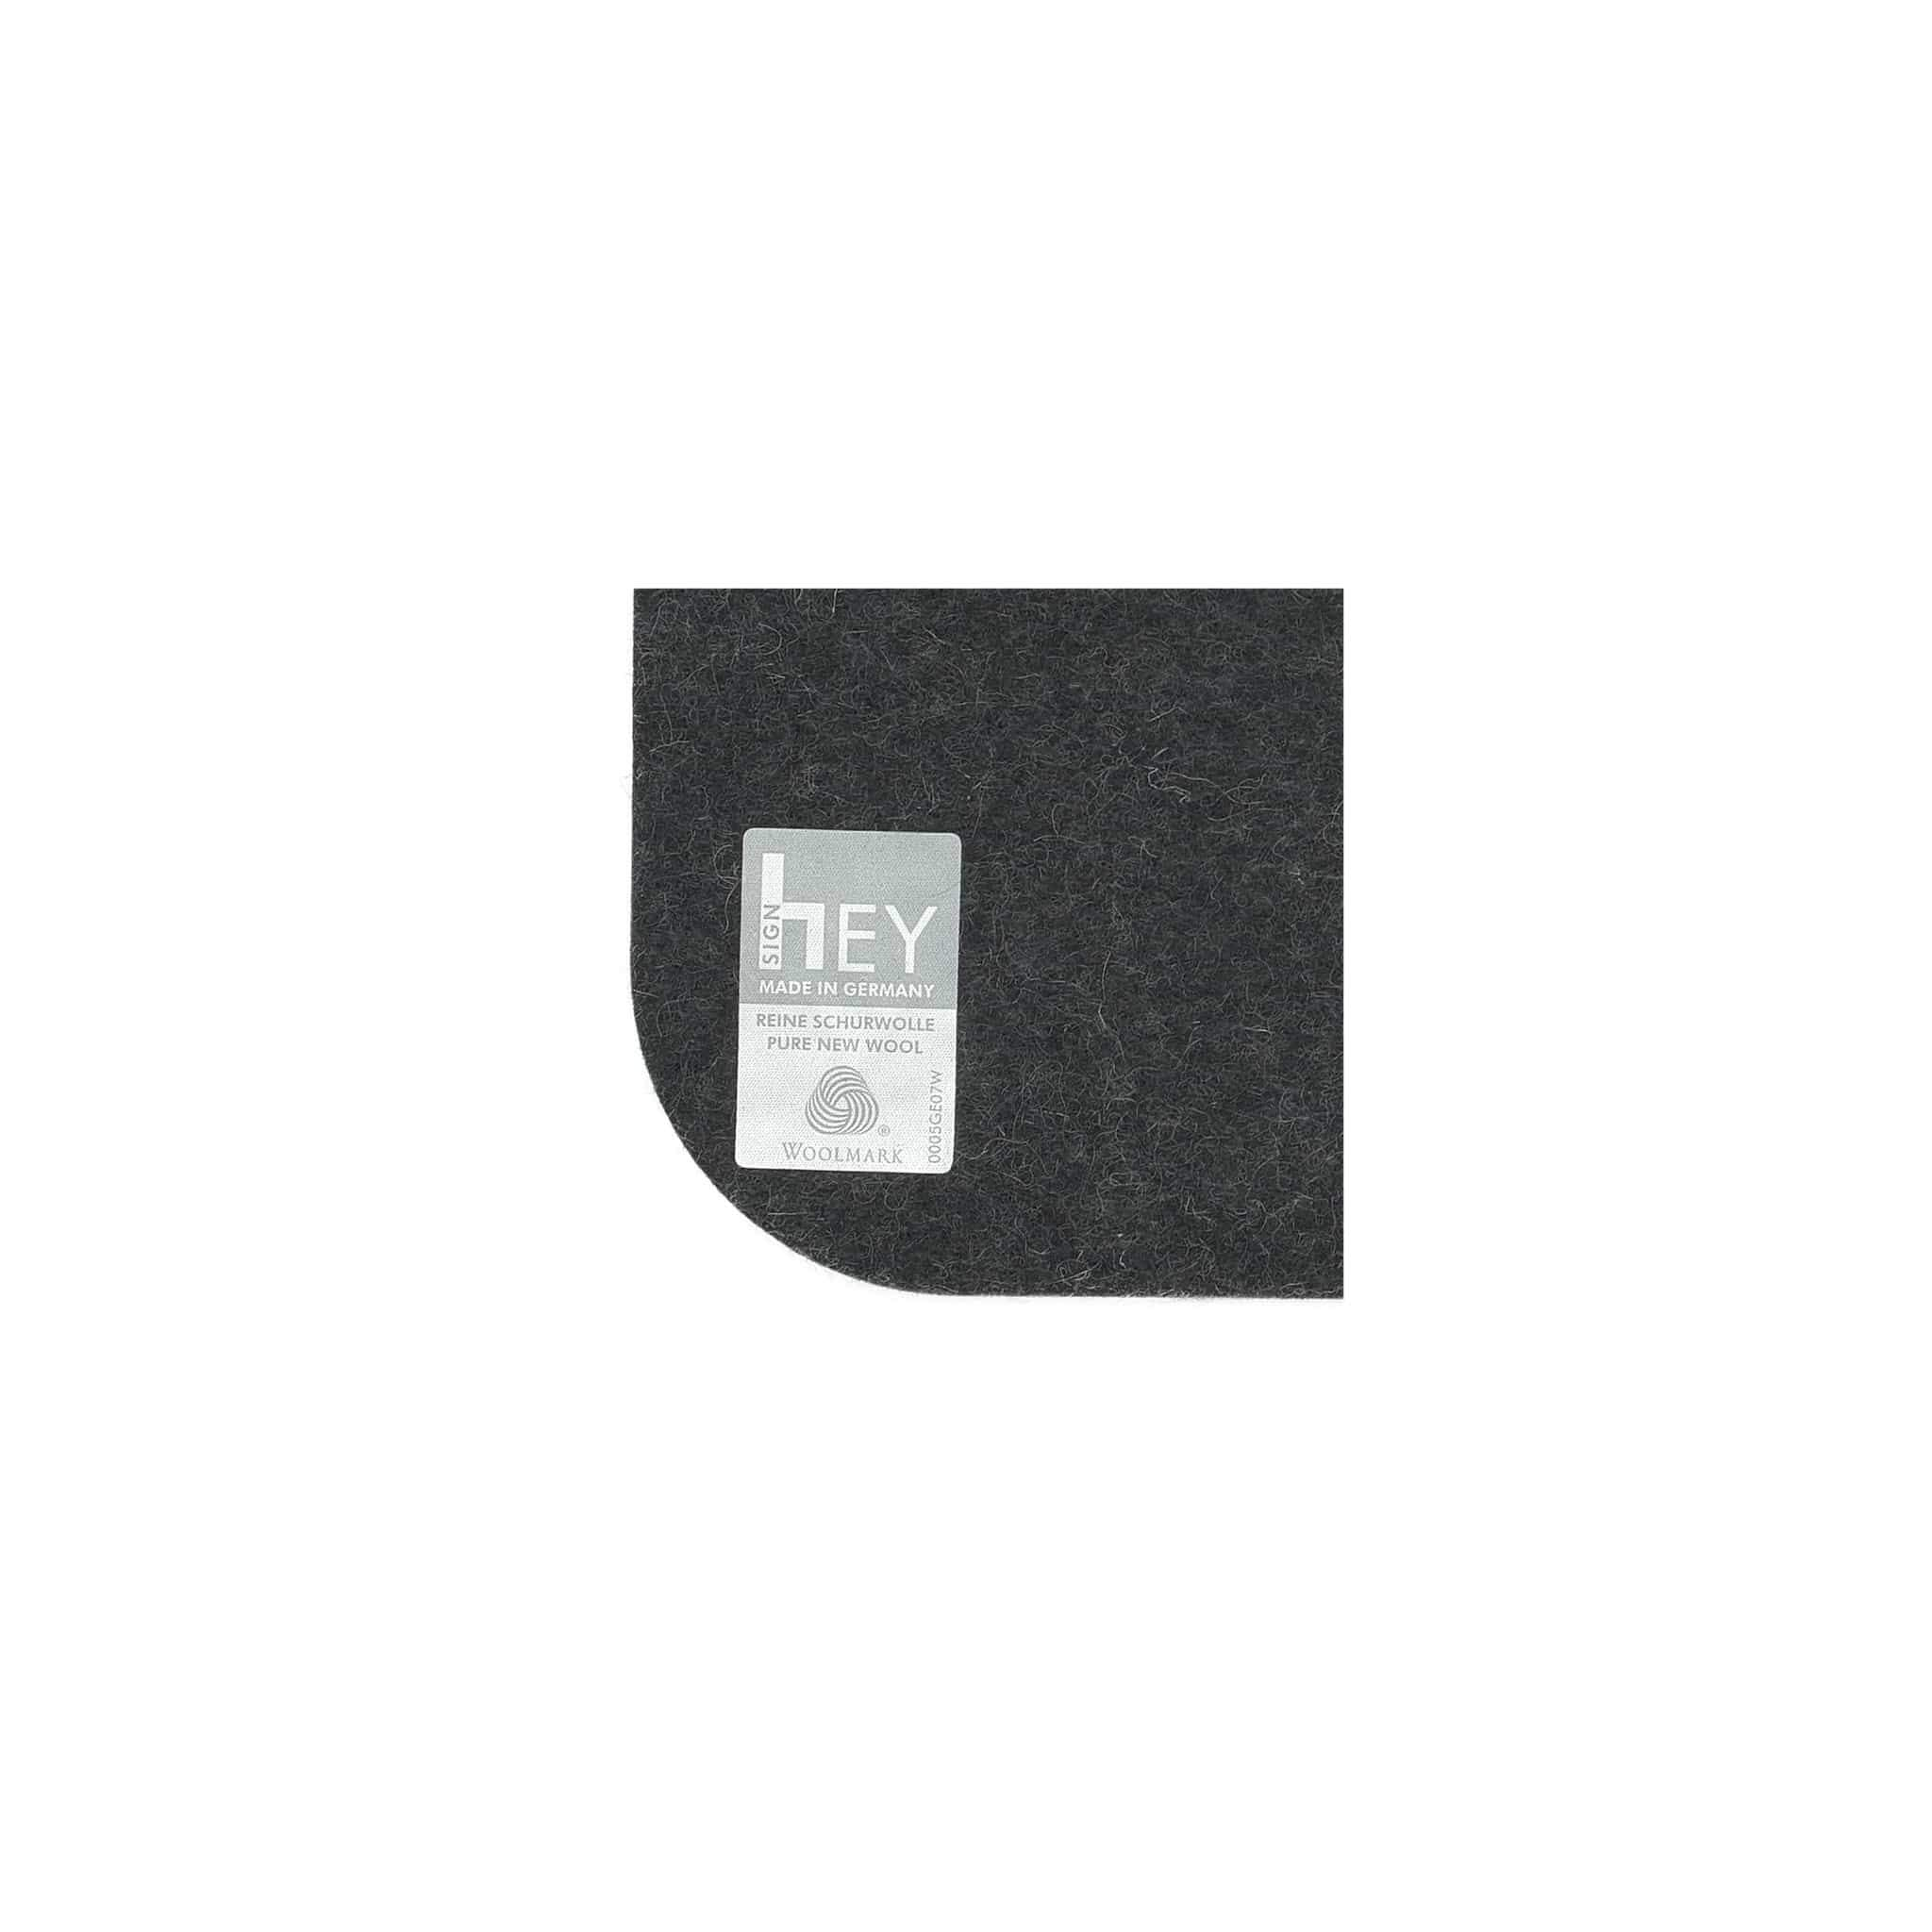 Rectangular Felt Placemat in Graphite by Hey-Sign 300134508 looking at Closeup-Label